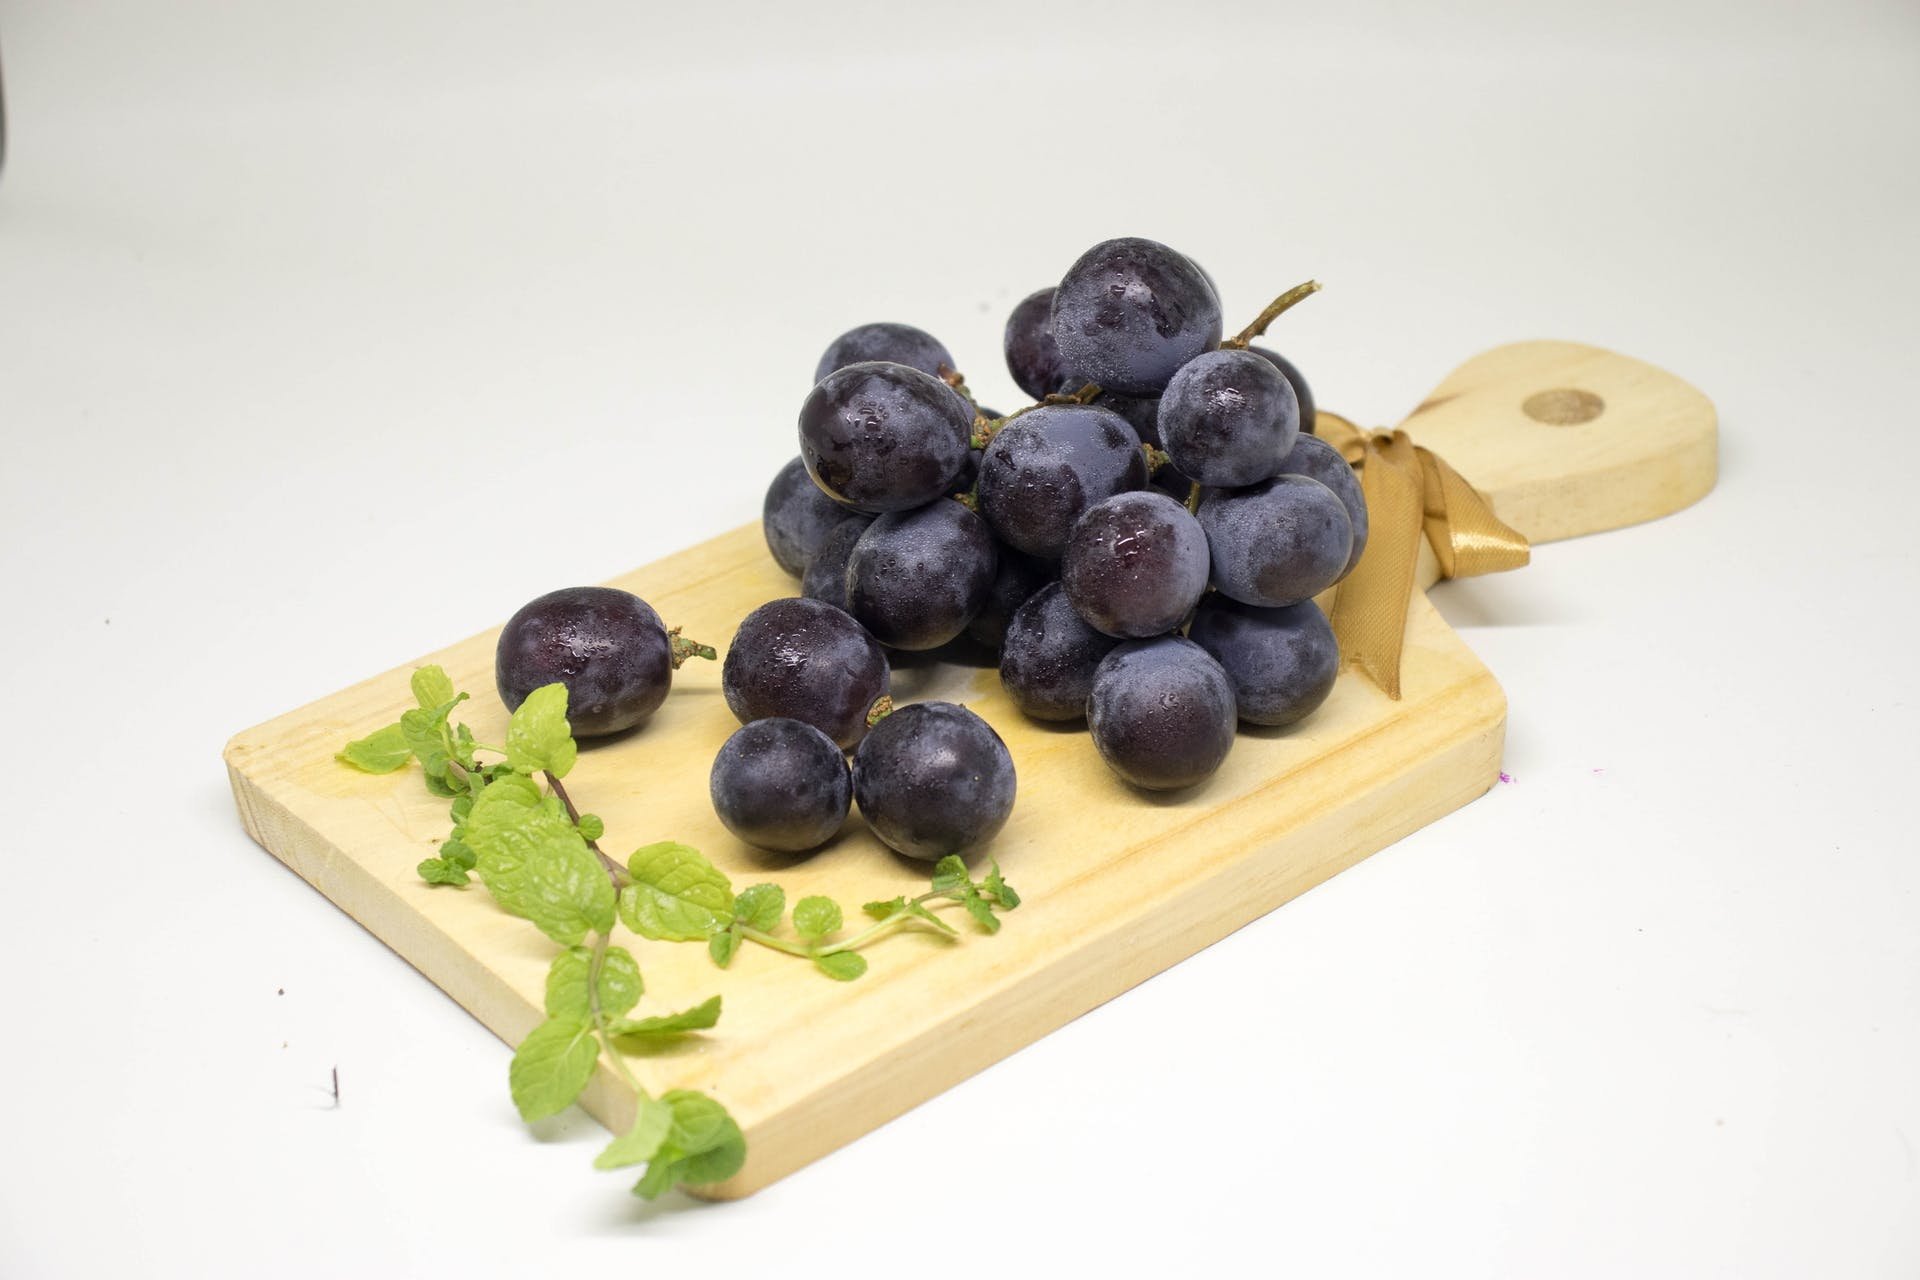 fruits healthy food fresh grapes